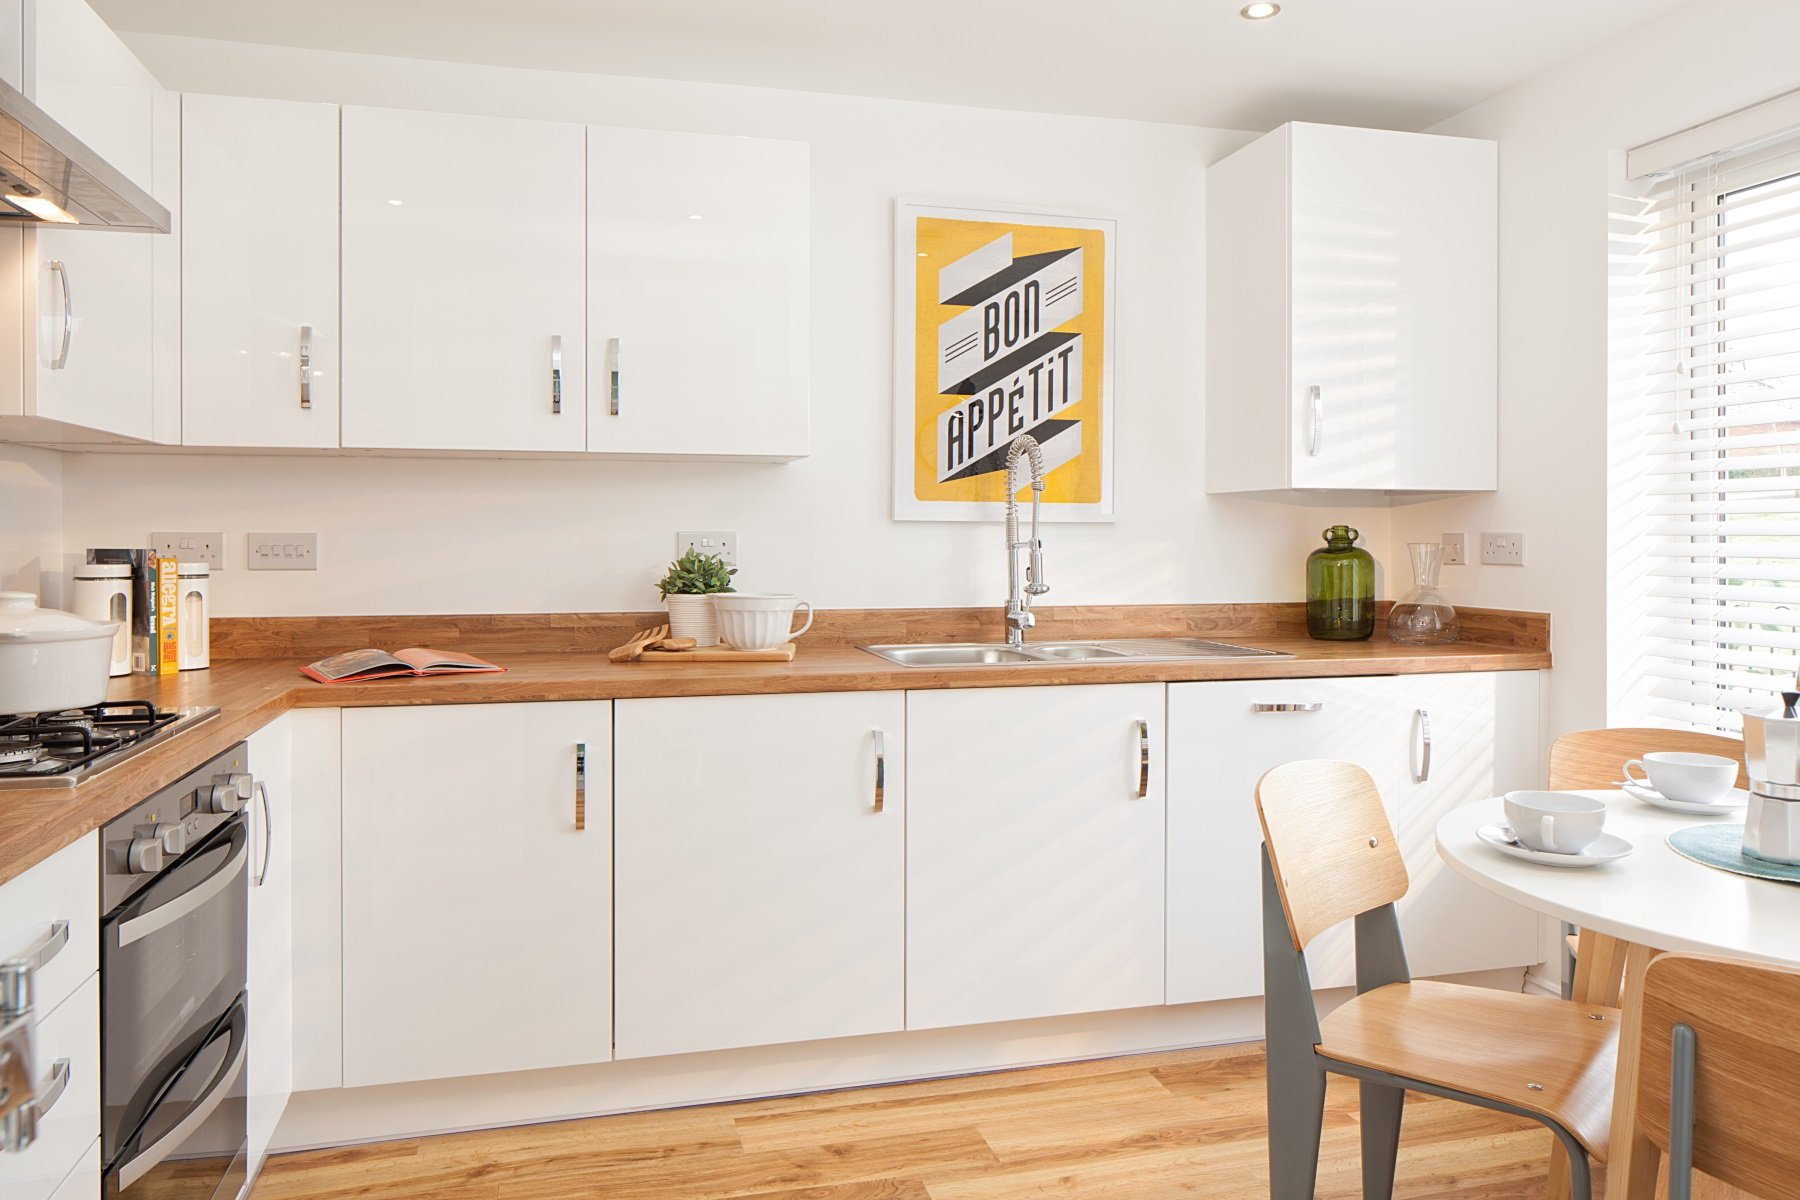 TW Exeter - Copleston Heights - Flatford example kitchen 2